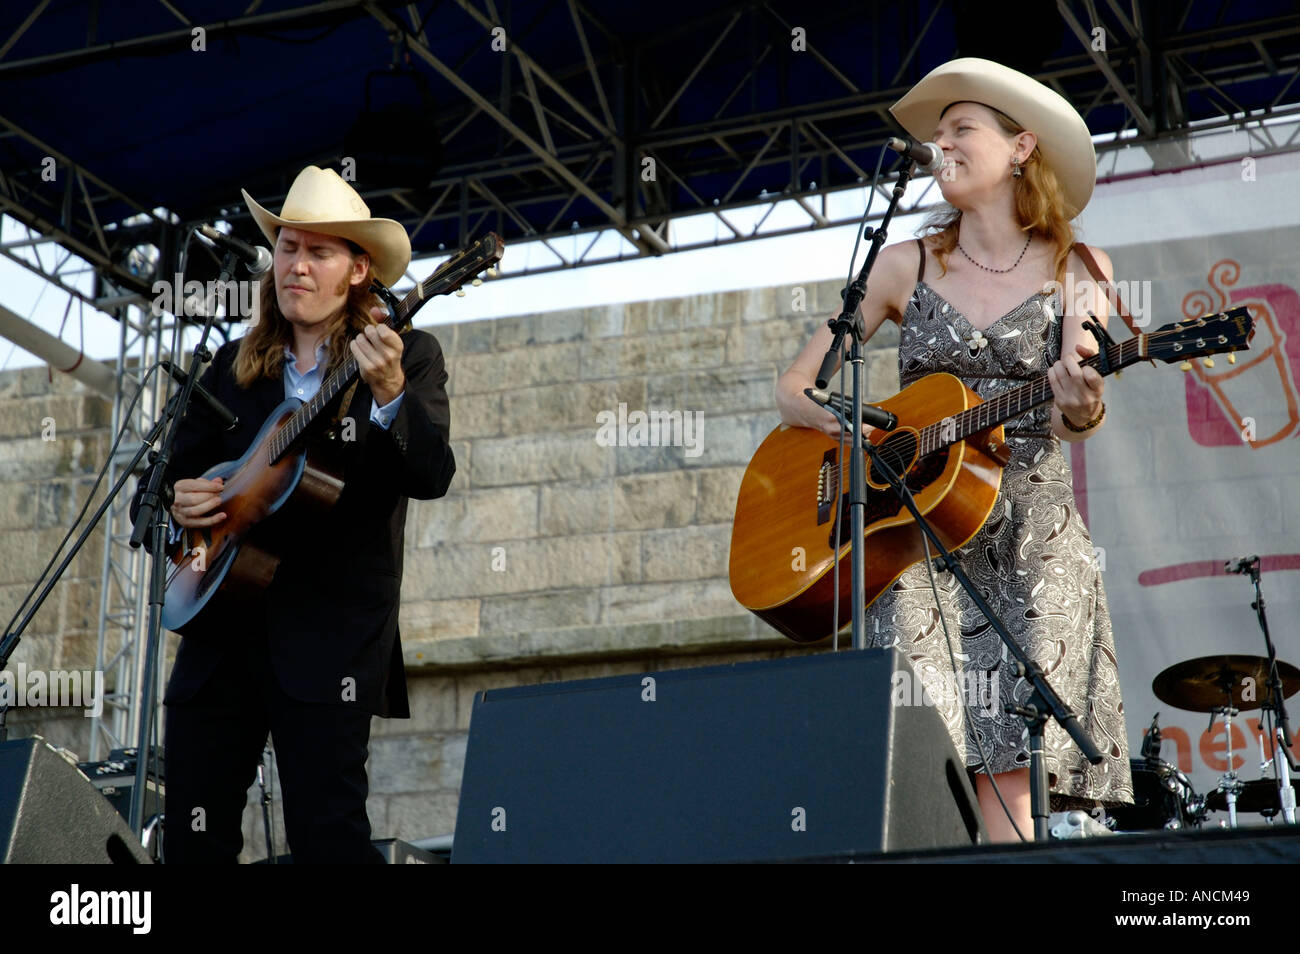 Gillian Welch onstage at the Newport Folk Festival For editorial use only - Stock Image